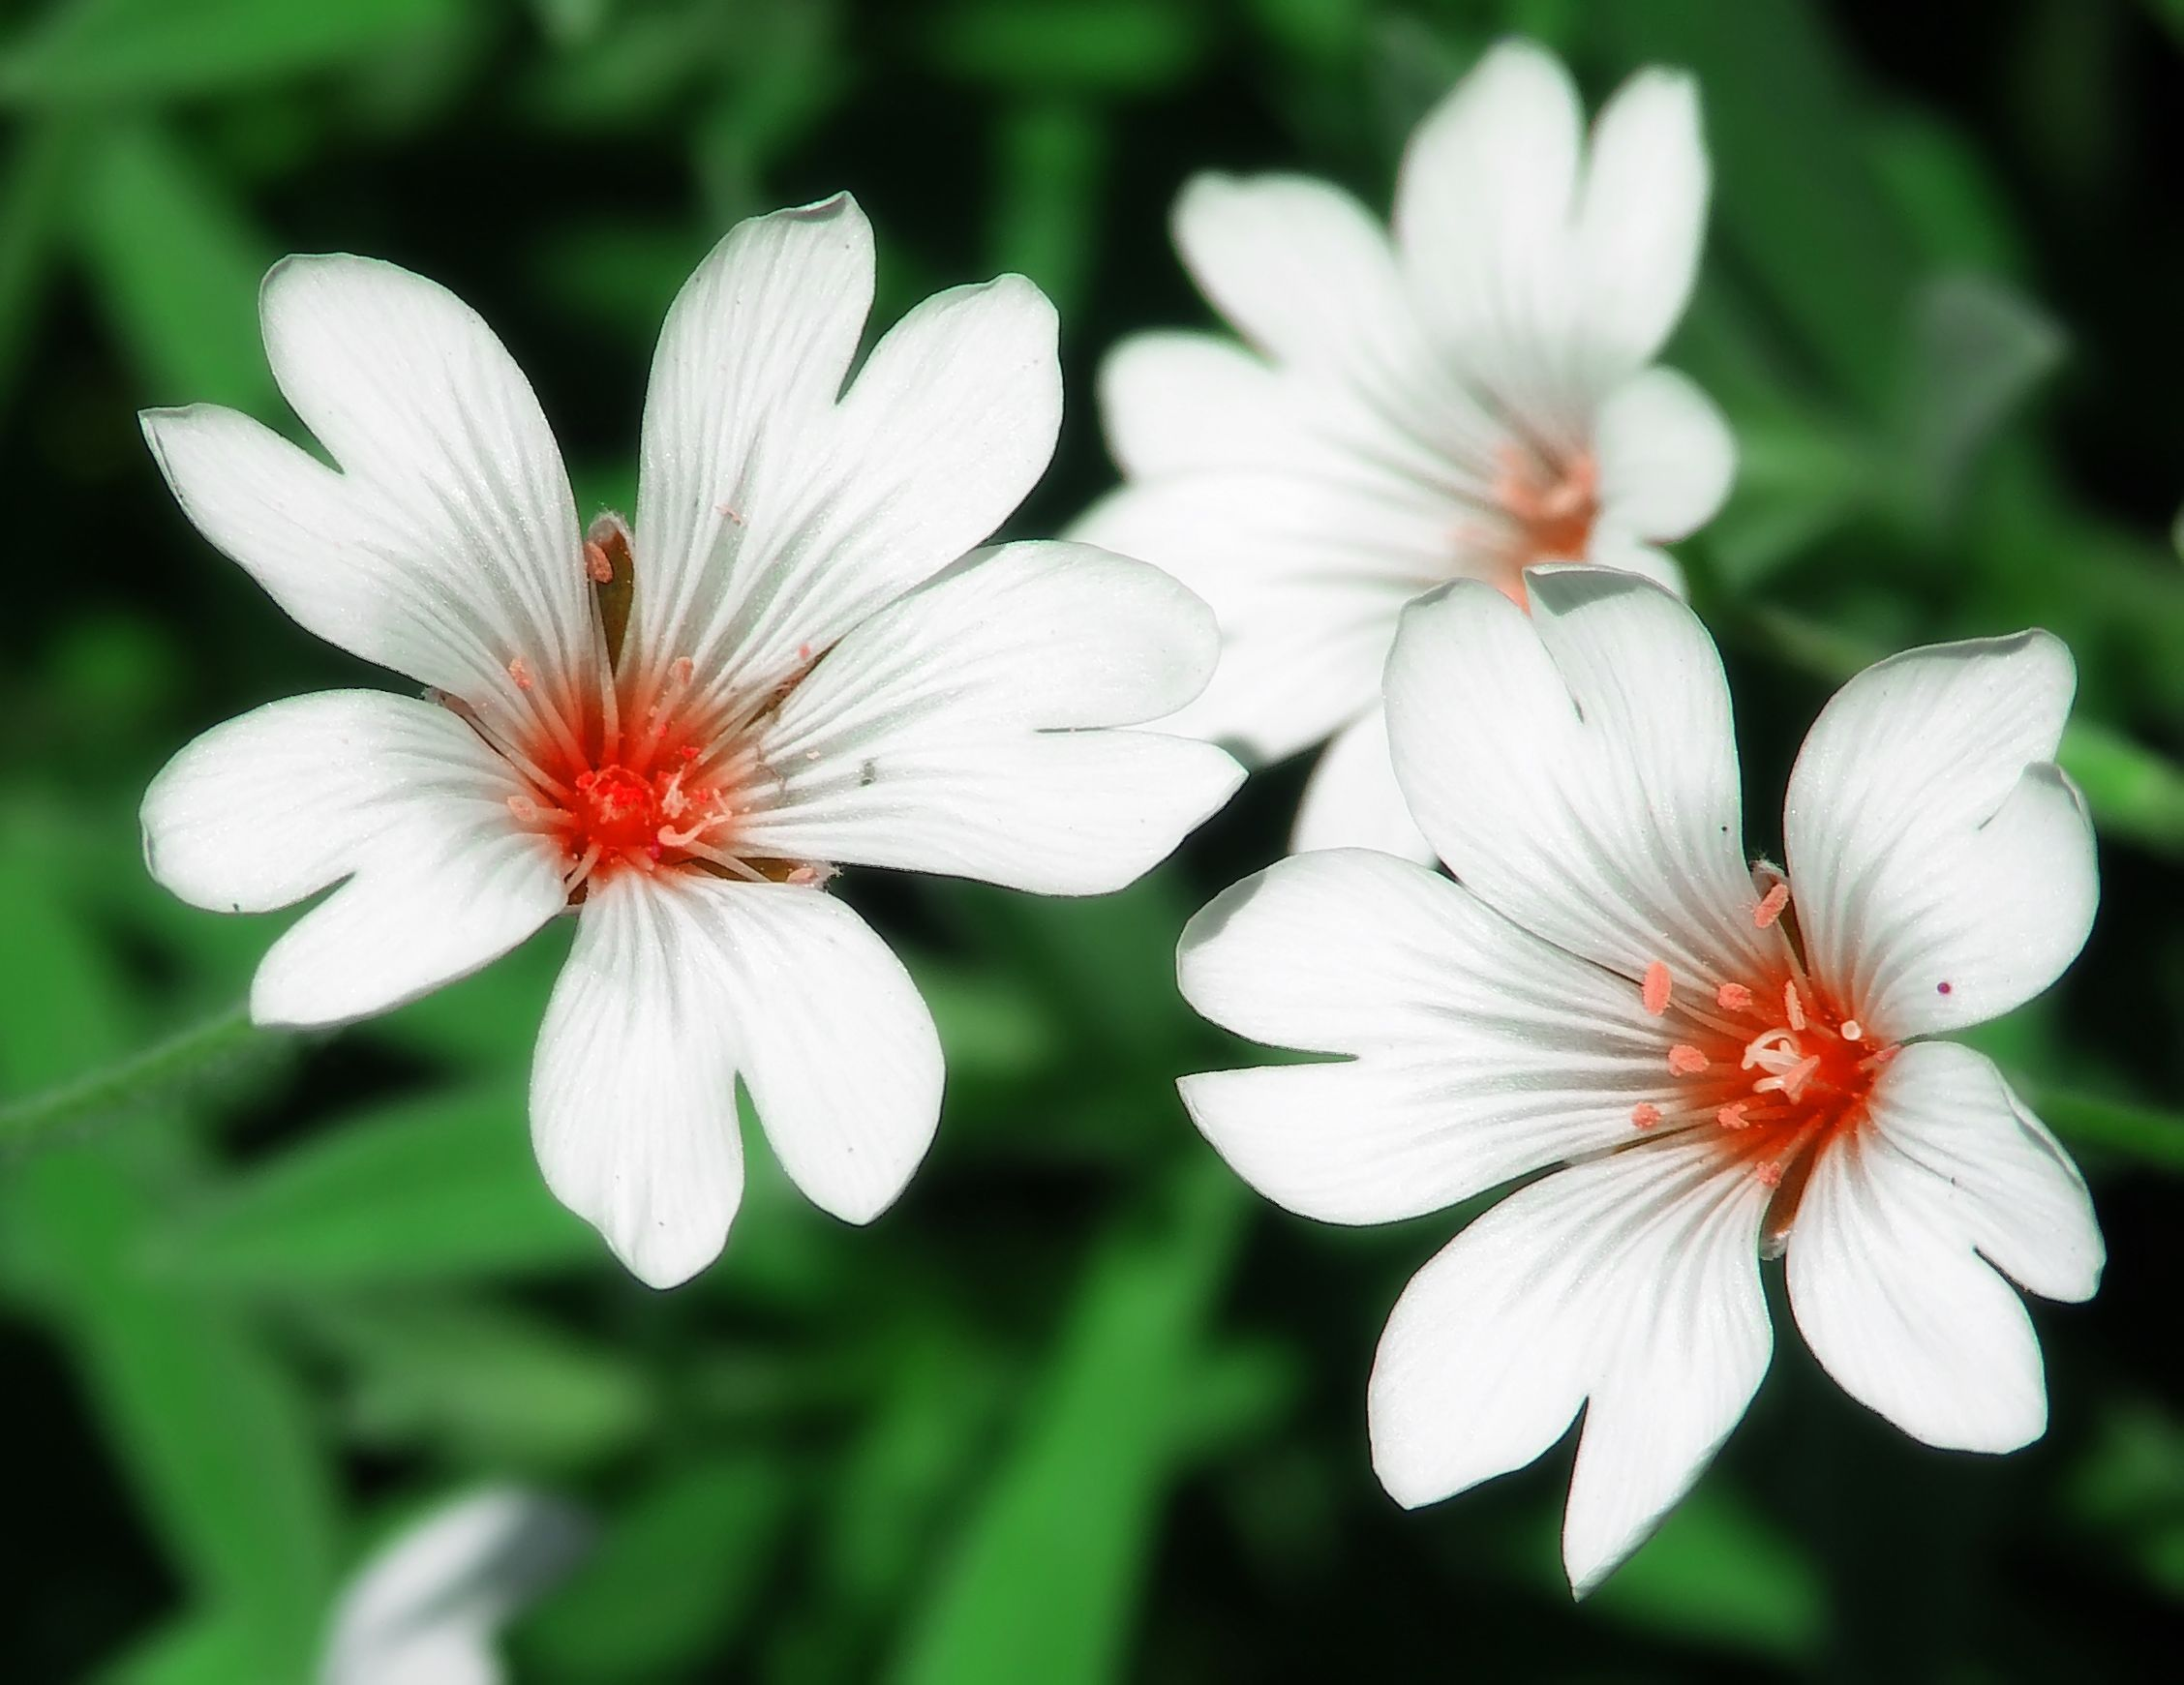 Garden flowers names - 100 Types Of The Most Beautiful White Flowers For Your Garden